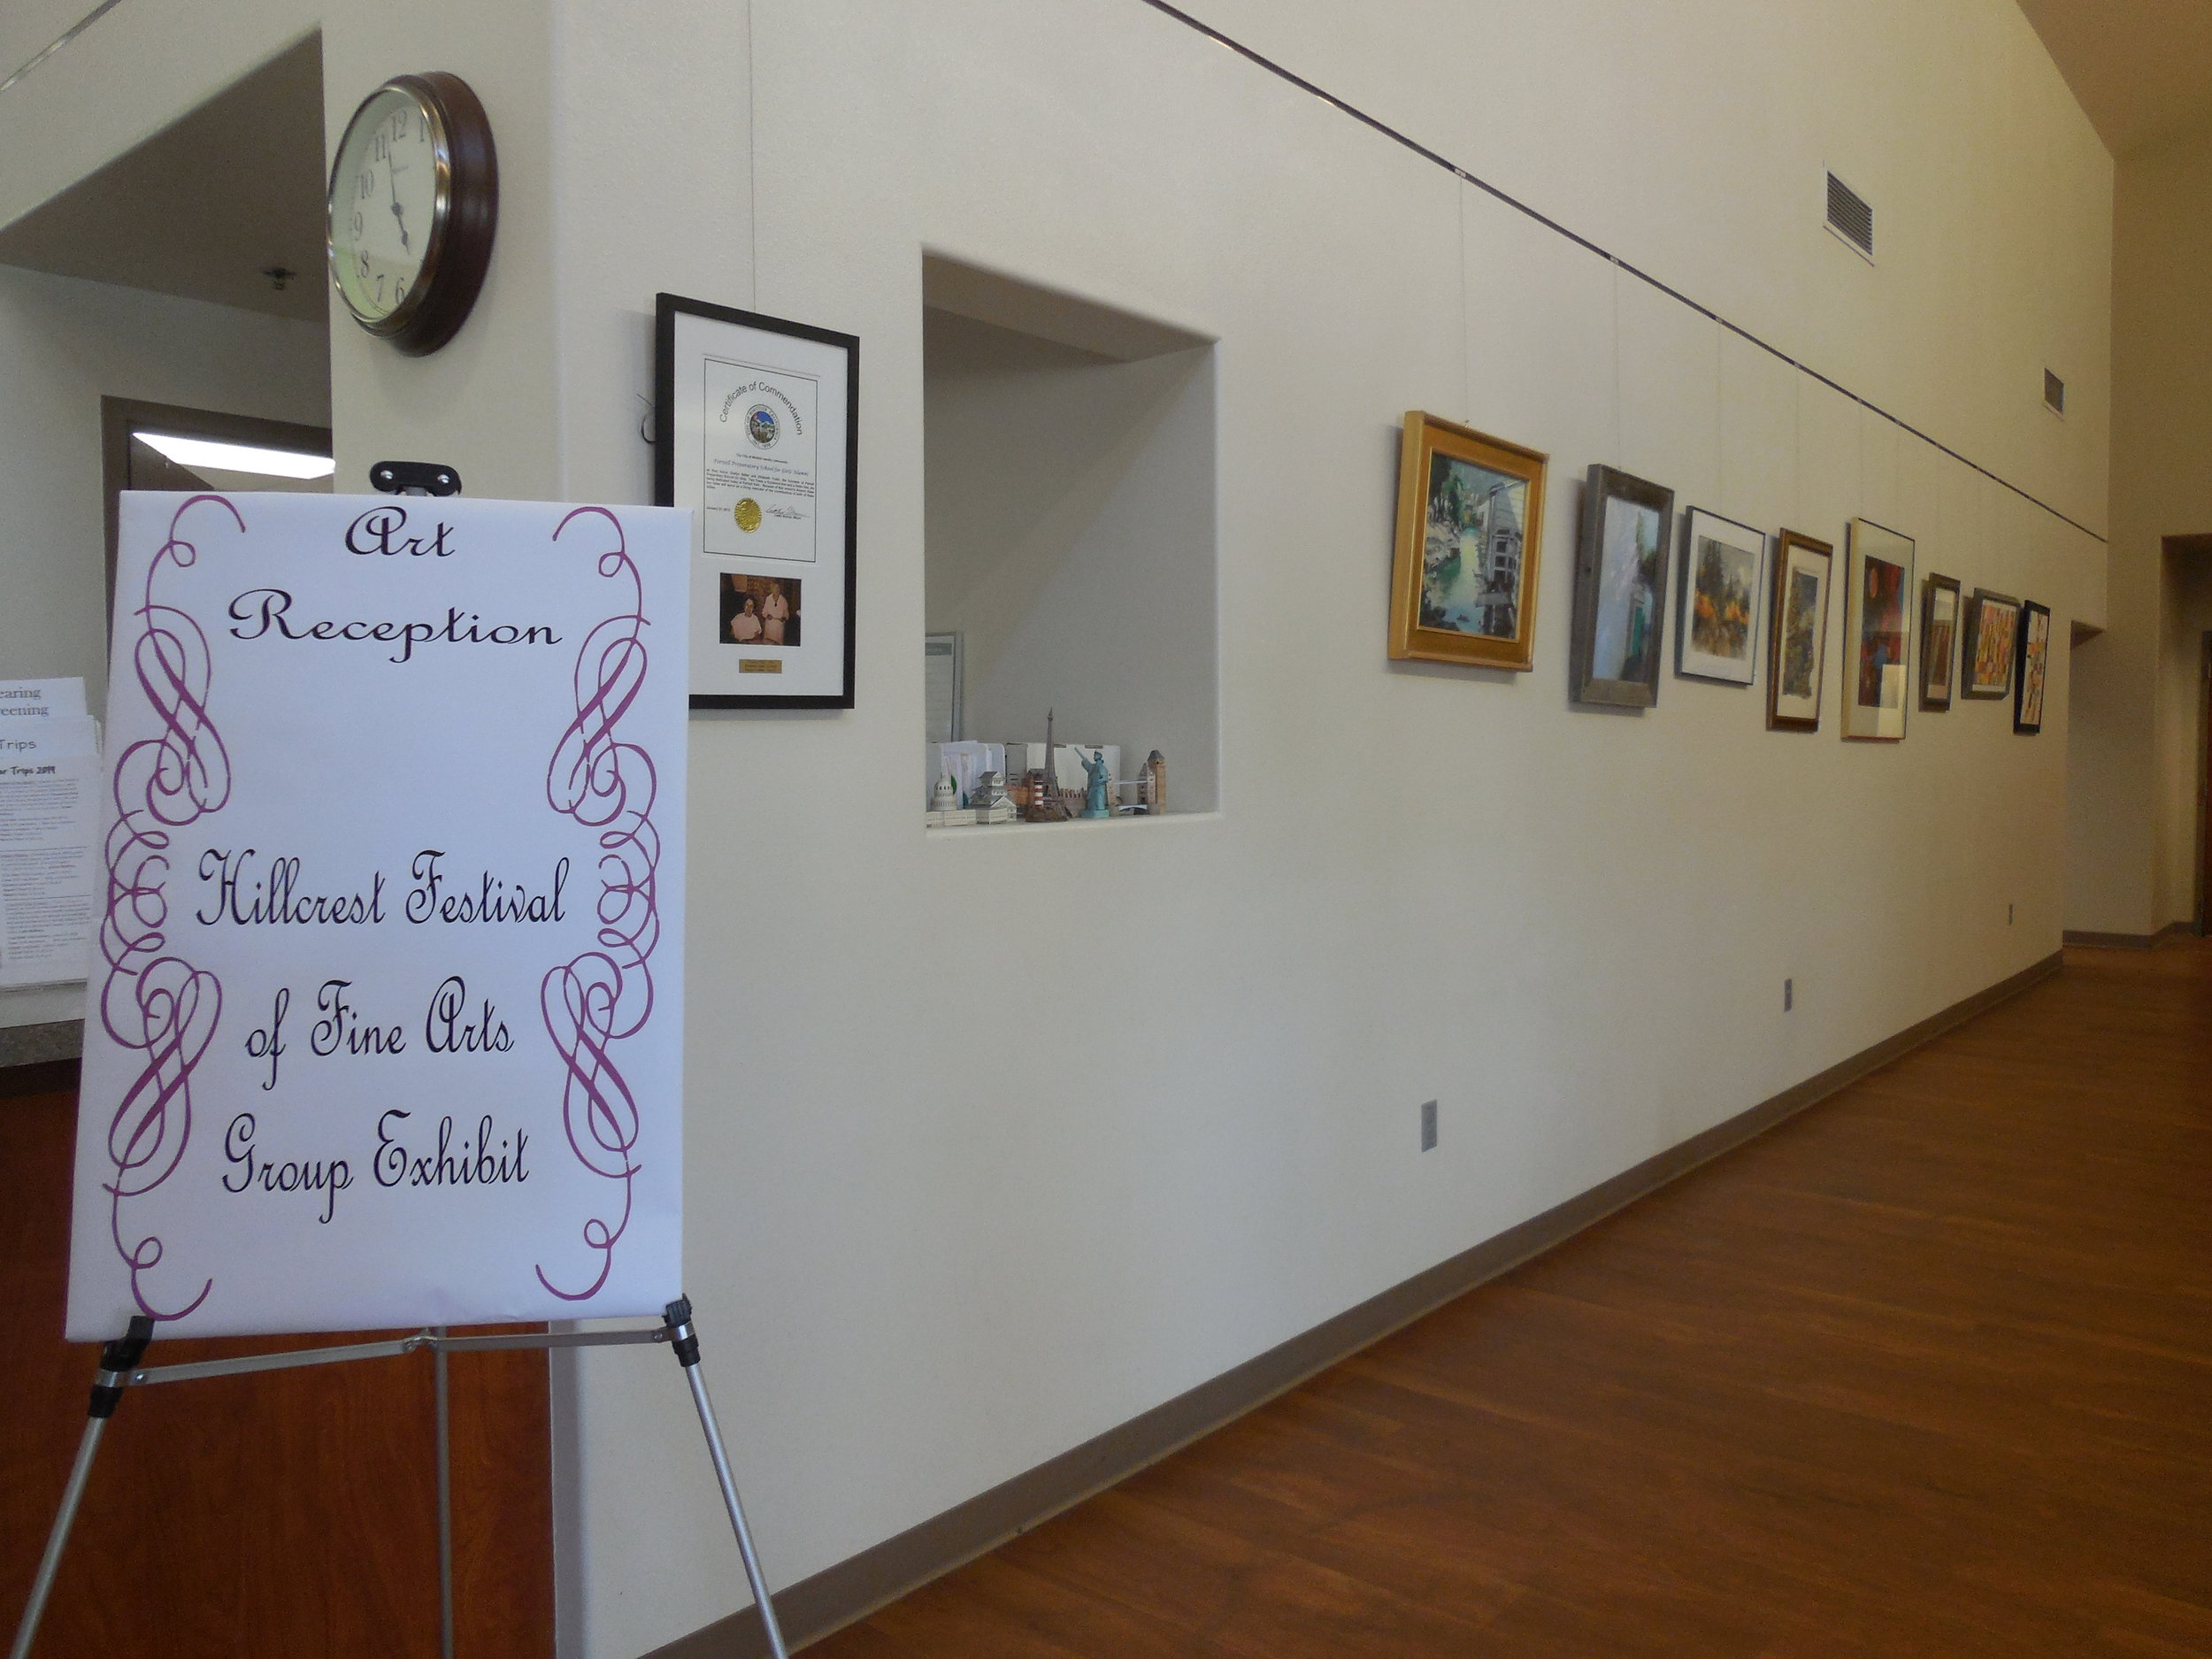 Hillcrest Group Exhibit was showcased at the Parnell Park Community Center in City of Whittier.